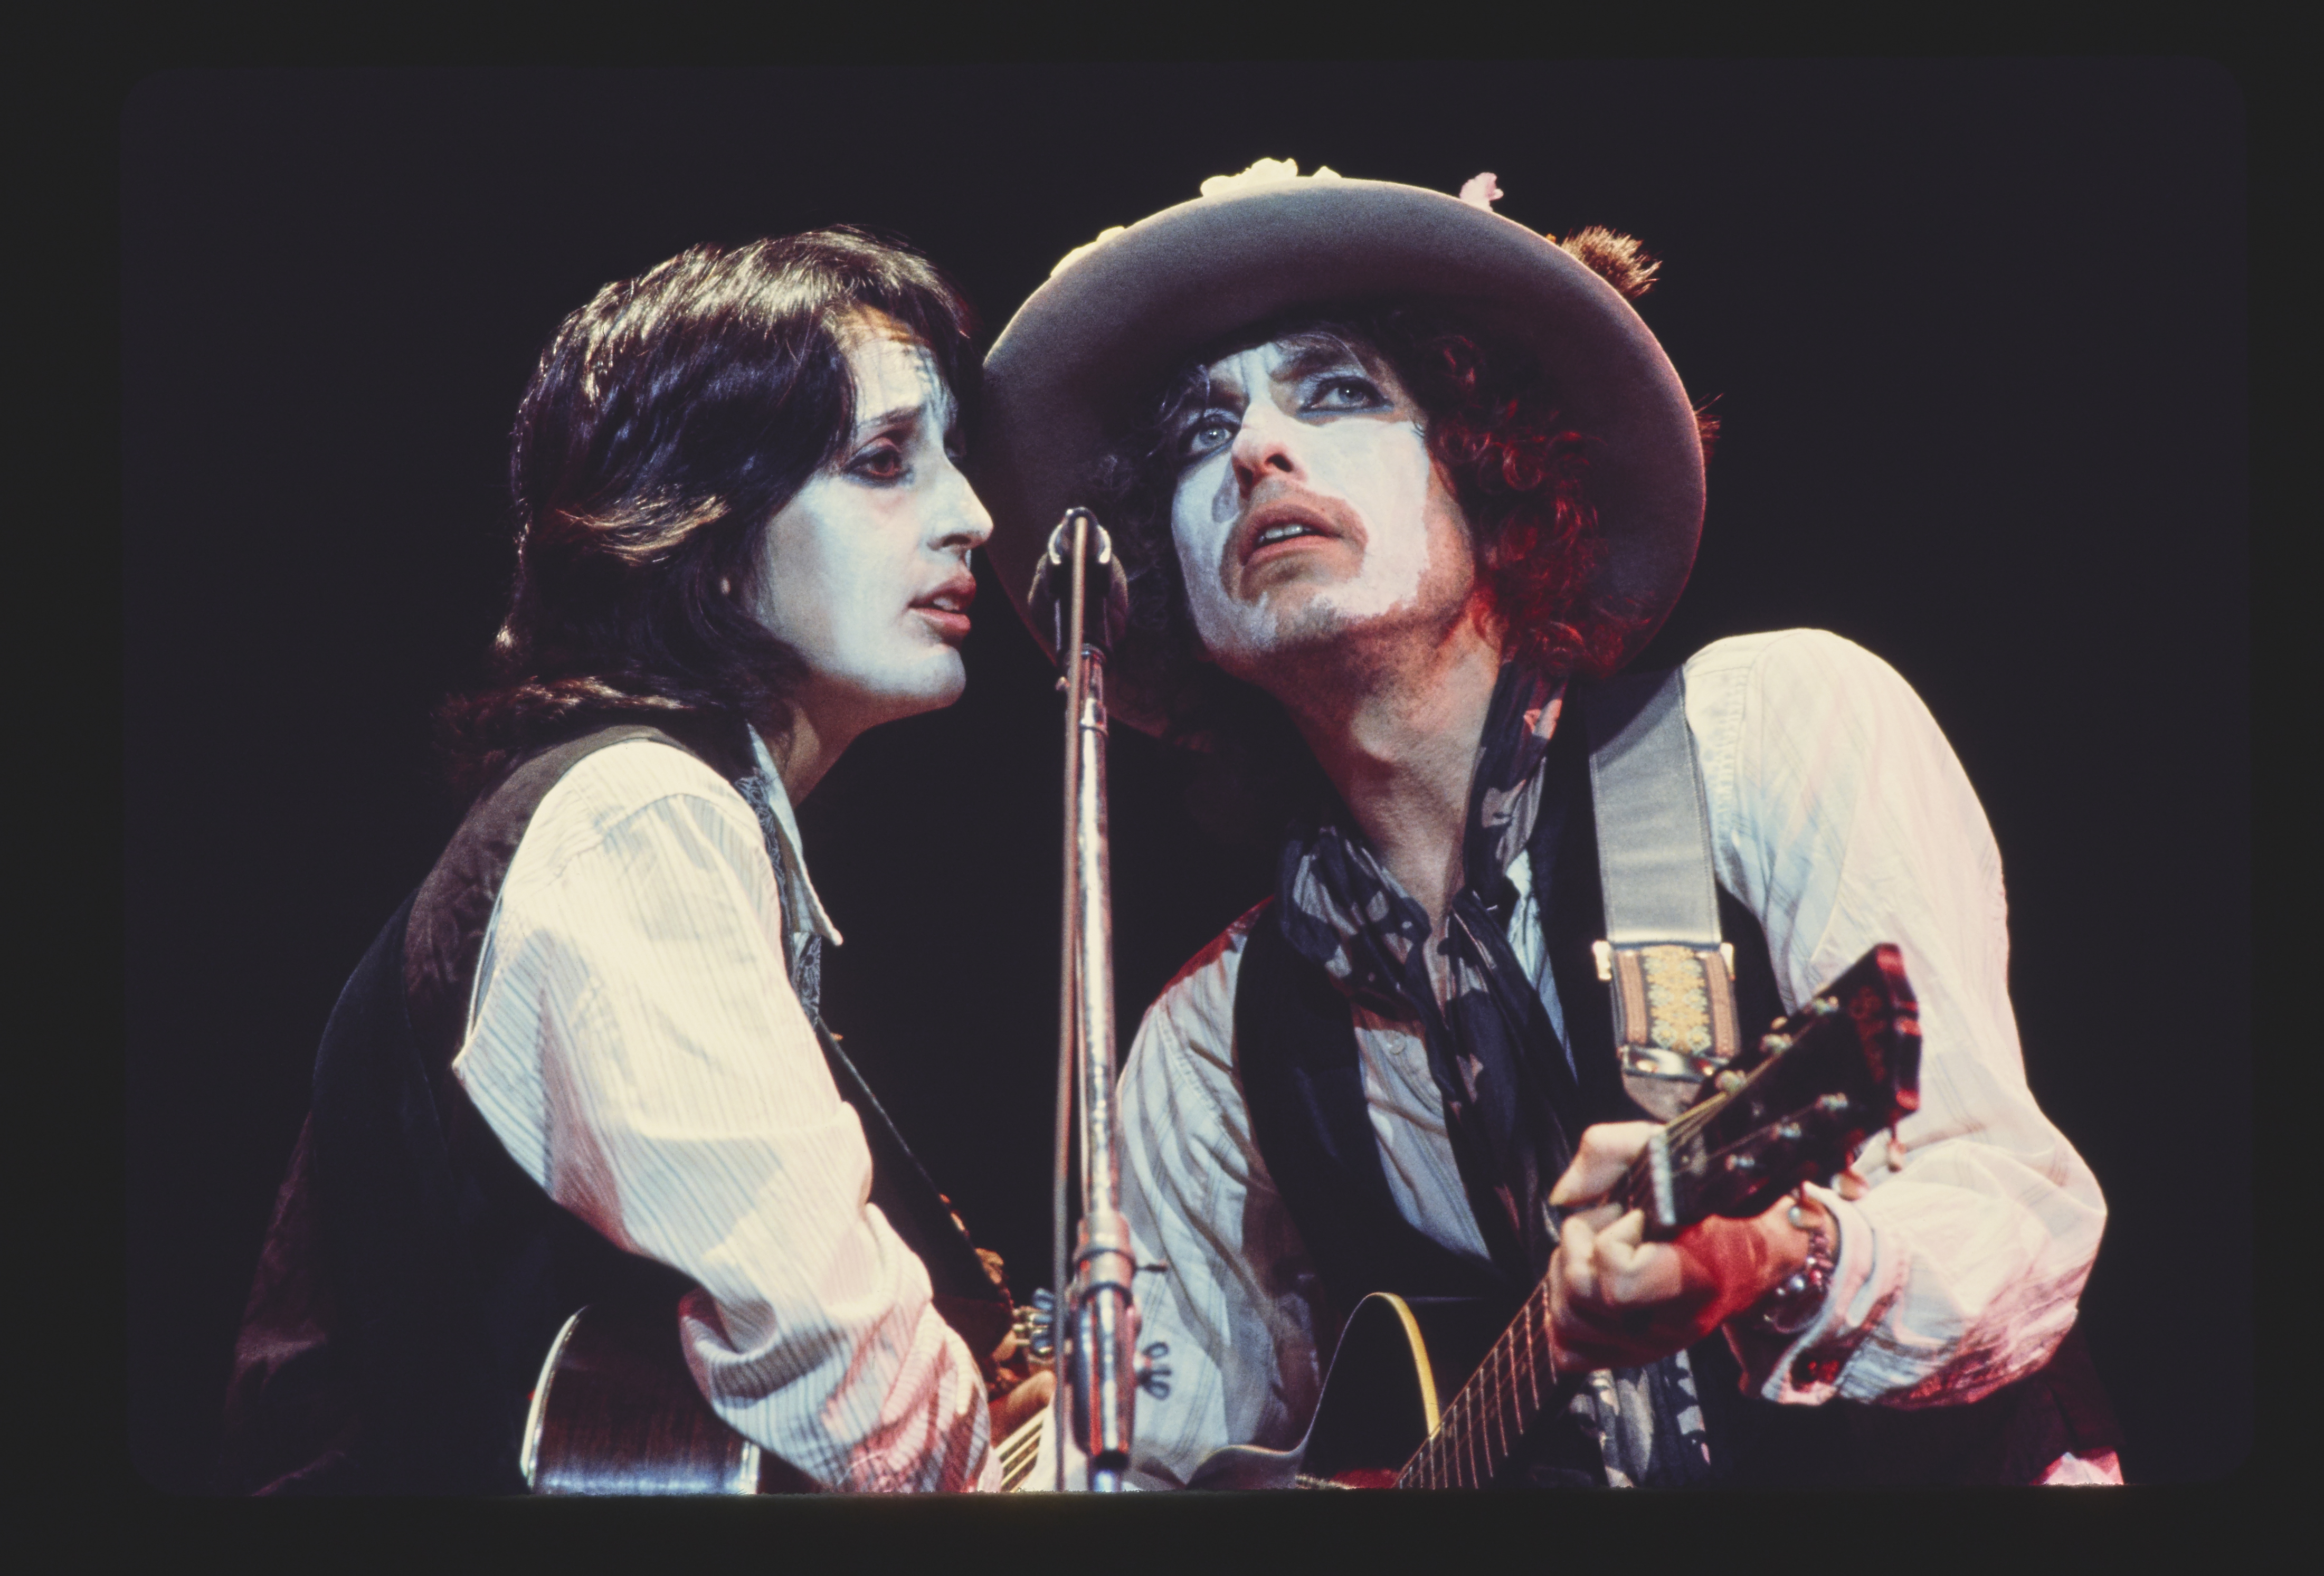 Joan Baez, left, and Bob Dylan, as seen in  Rolling Thunder Revue: A Bob Dylan Story by Martin Scorsese.